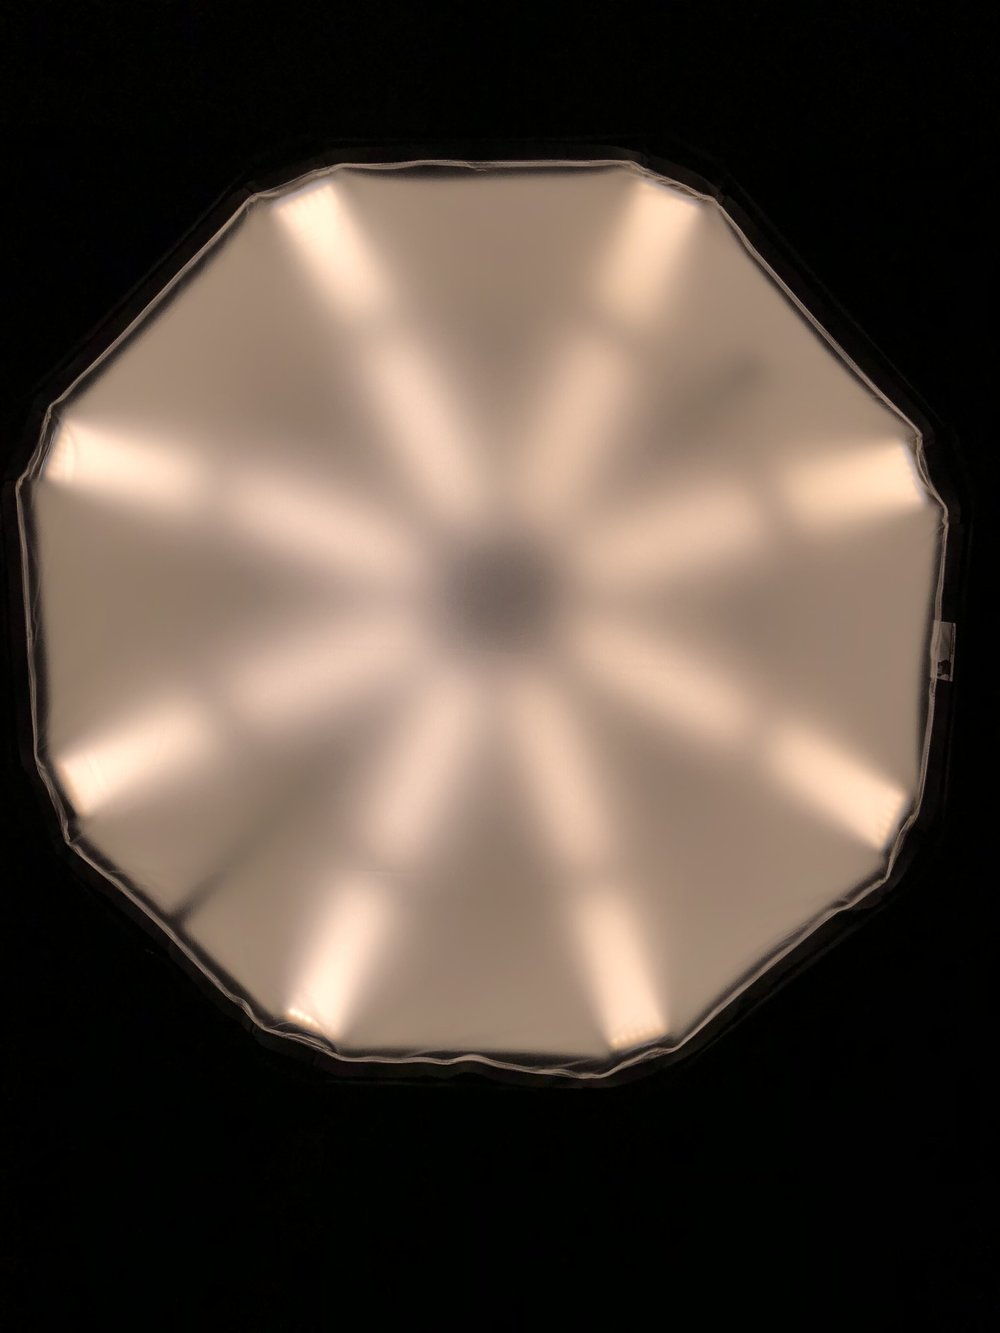 HALF SOFT FROST - The white vinyl product offers a unique scattering of light and allows more light to transmit and minimizing light loss. It's a gorgeous eye light, take a photo of that one in someone's eyes and you won't believe what you are seeing.